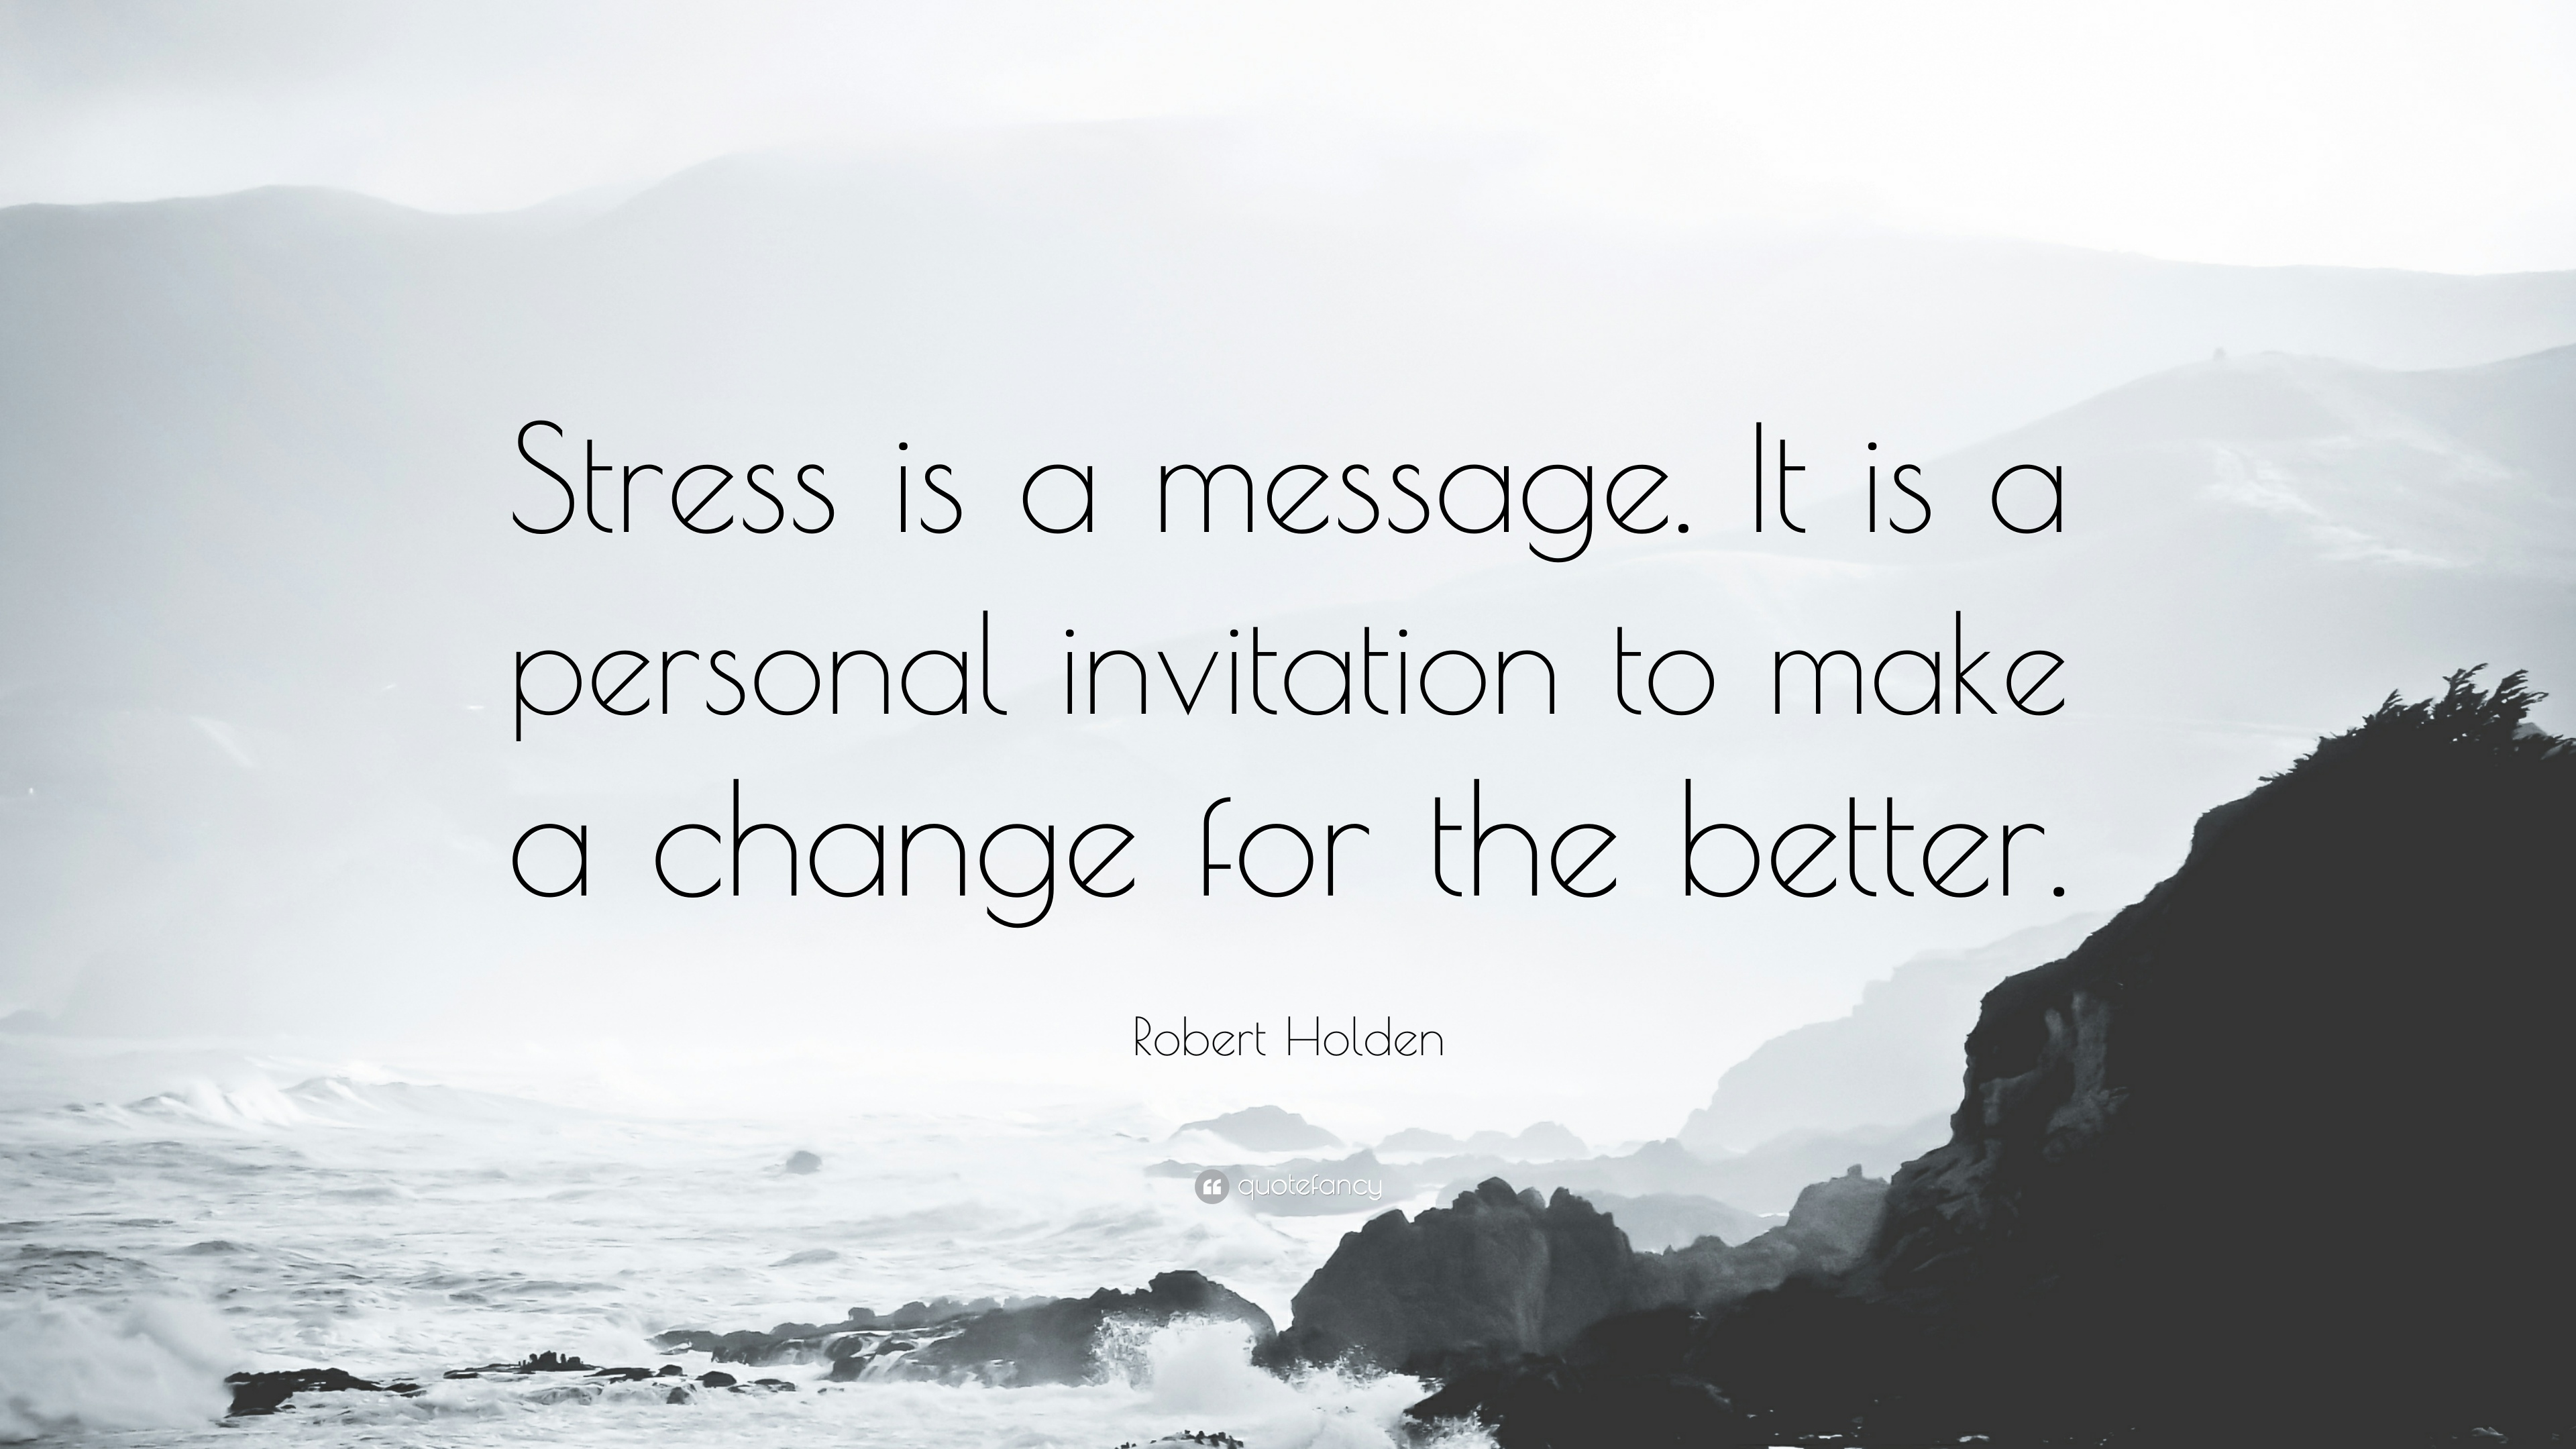 robert holden quote stress is a message it is a personal